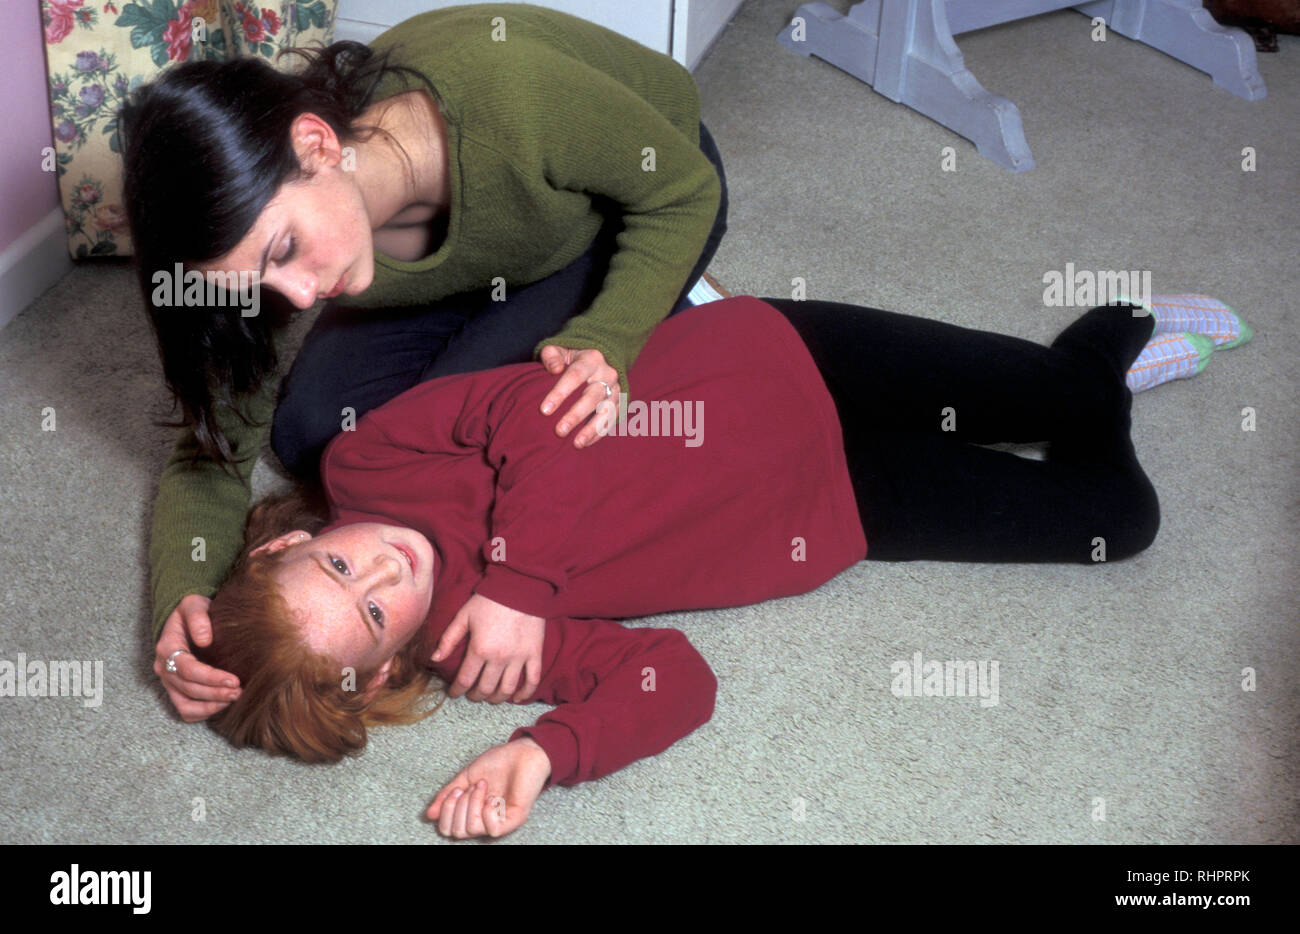 young woman or teenage sibling comforting girl who is lying on floor after shock or epileptic fit - Stock Image